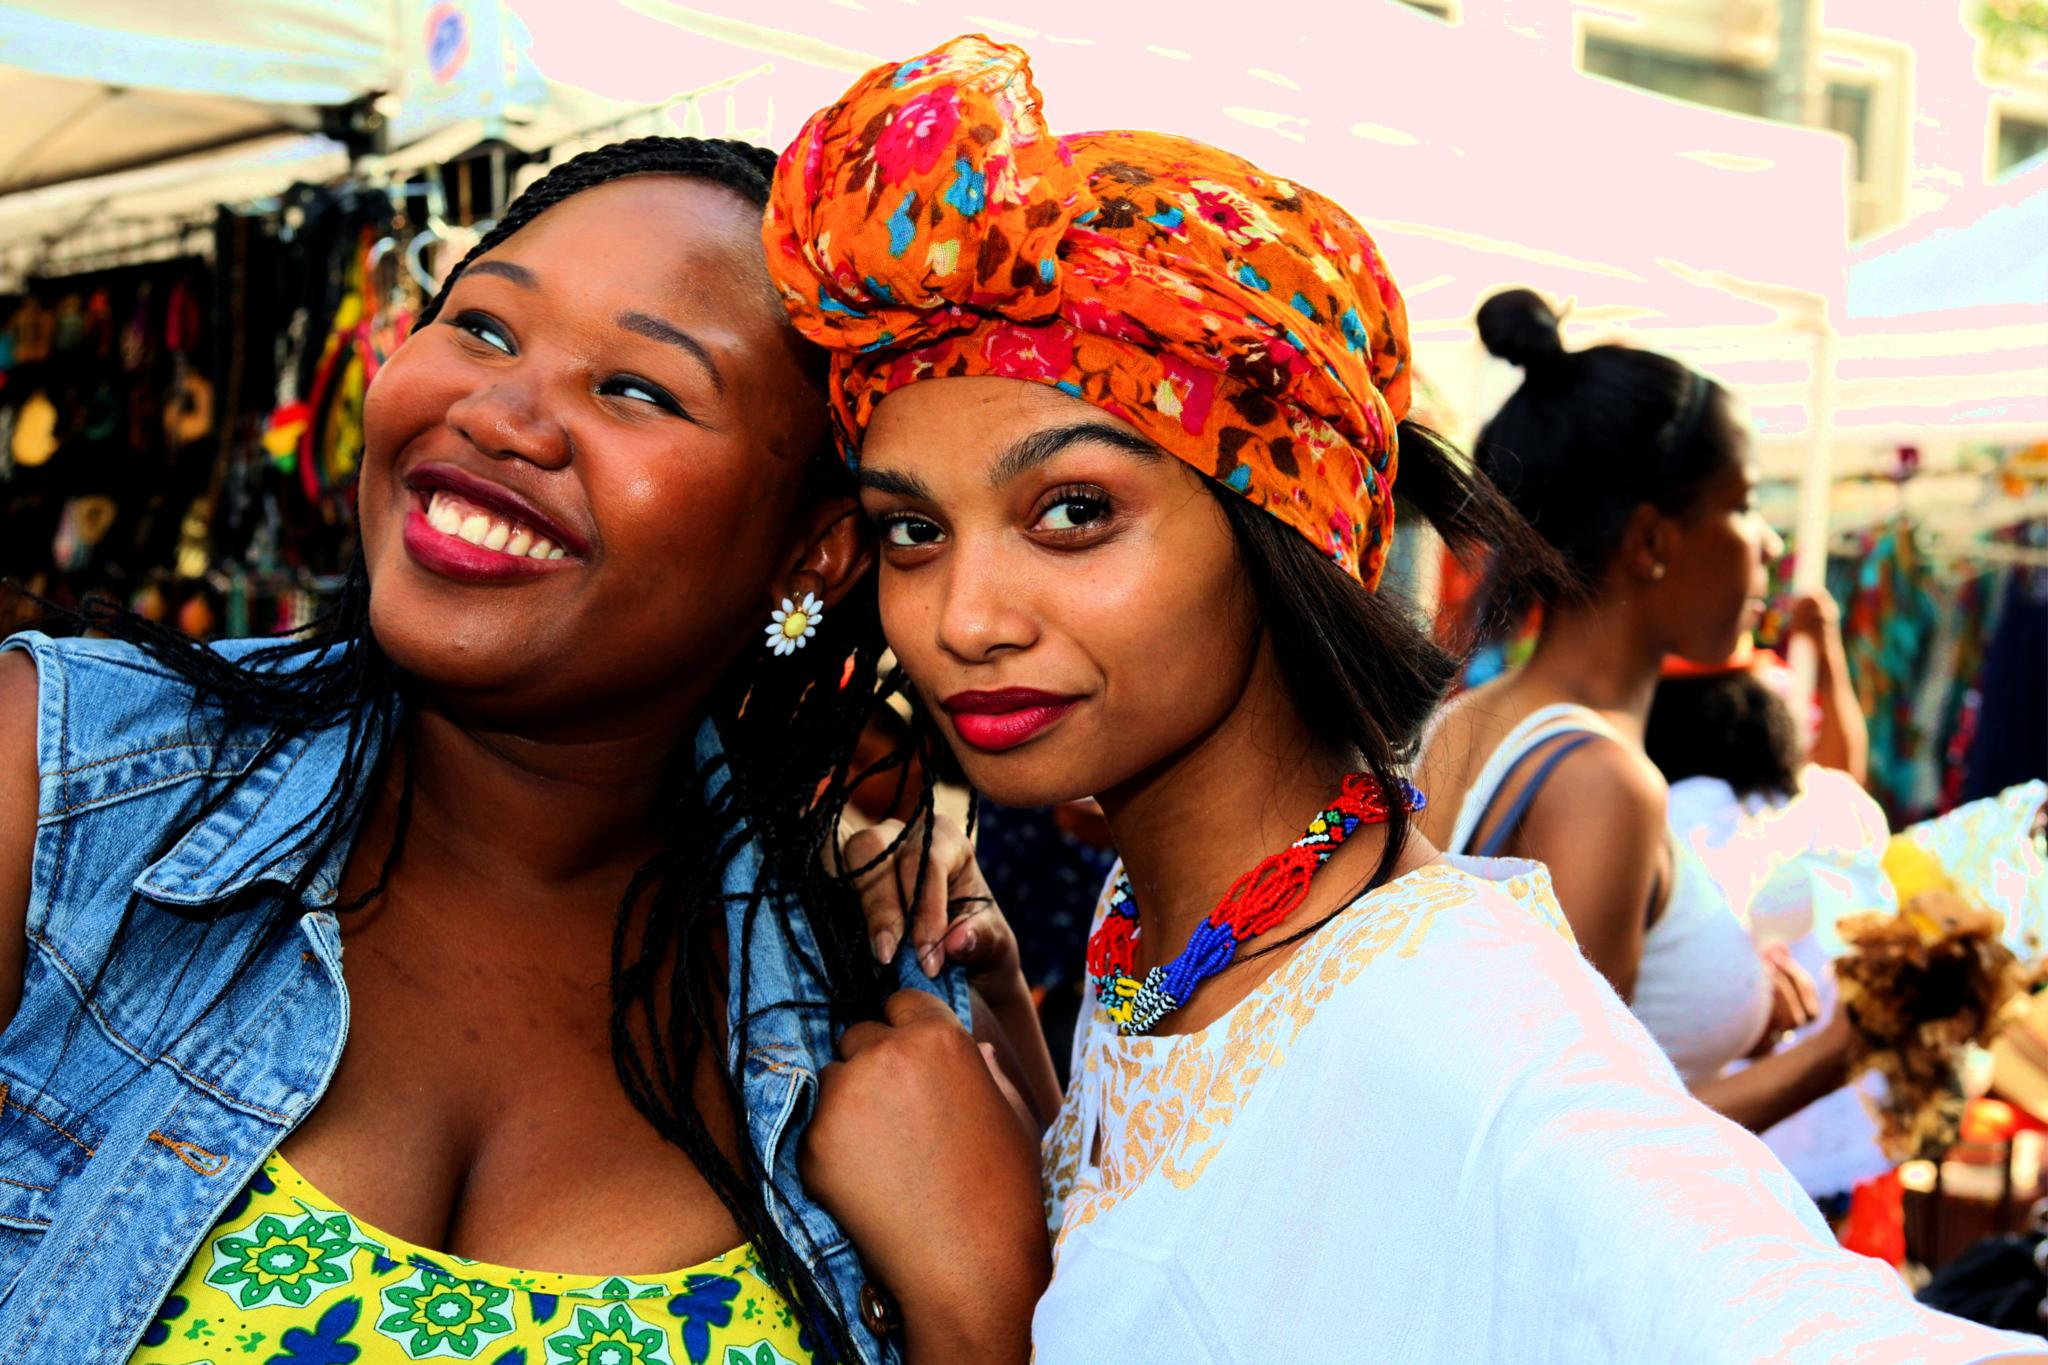 African Street Festival Brooklyn, New York by robteilets